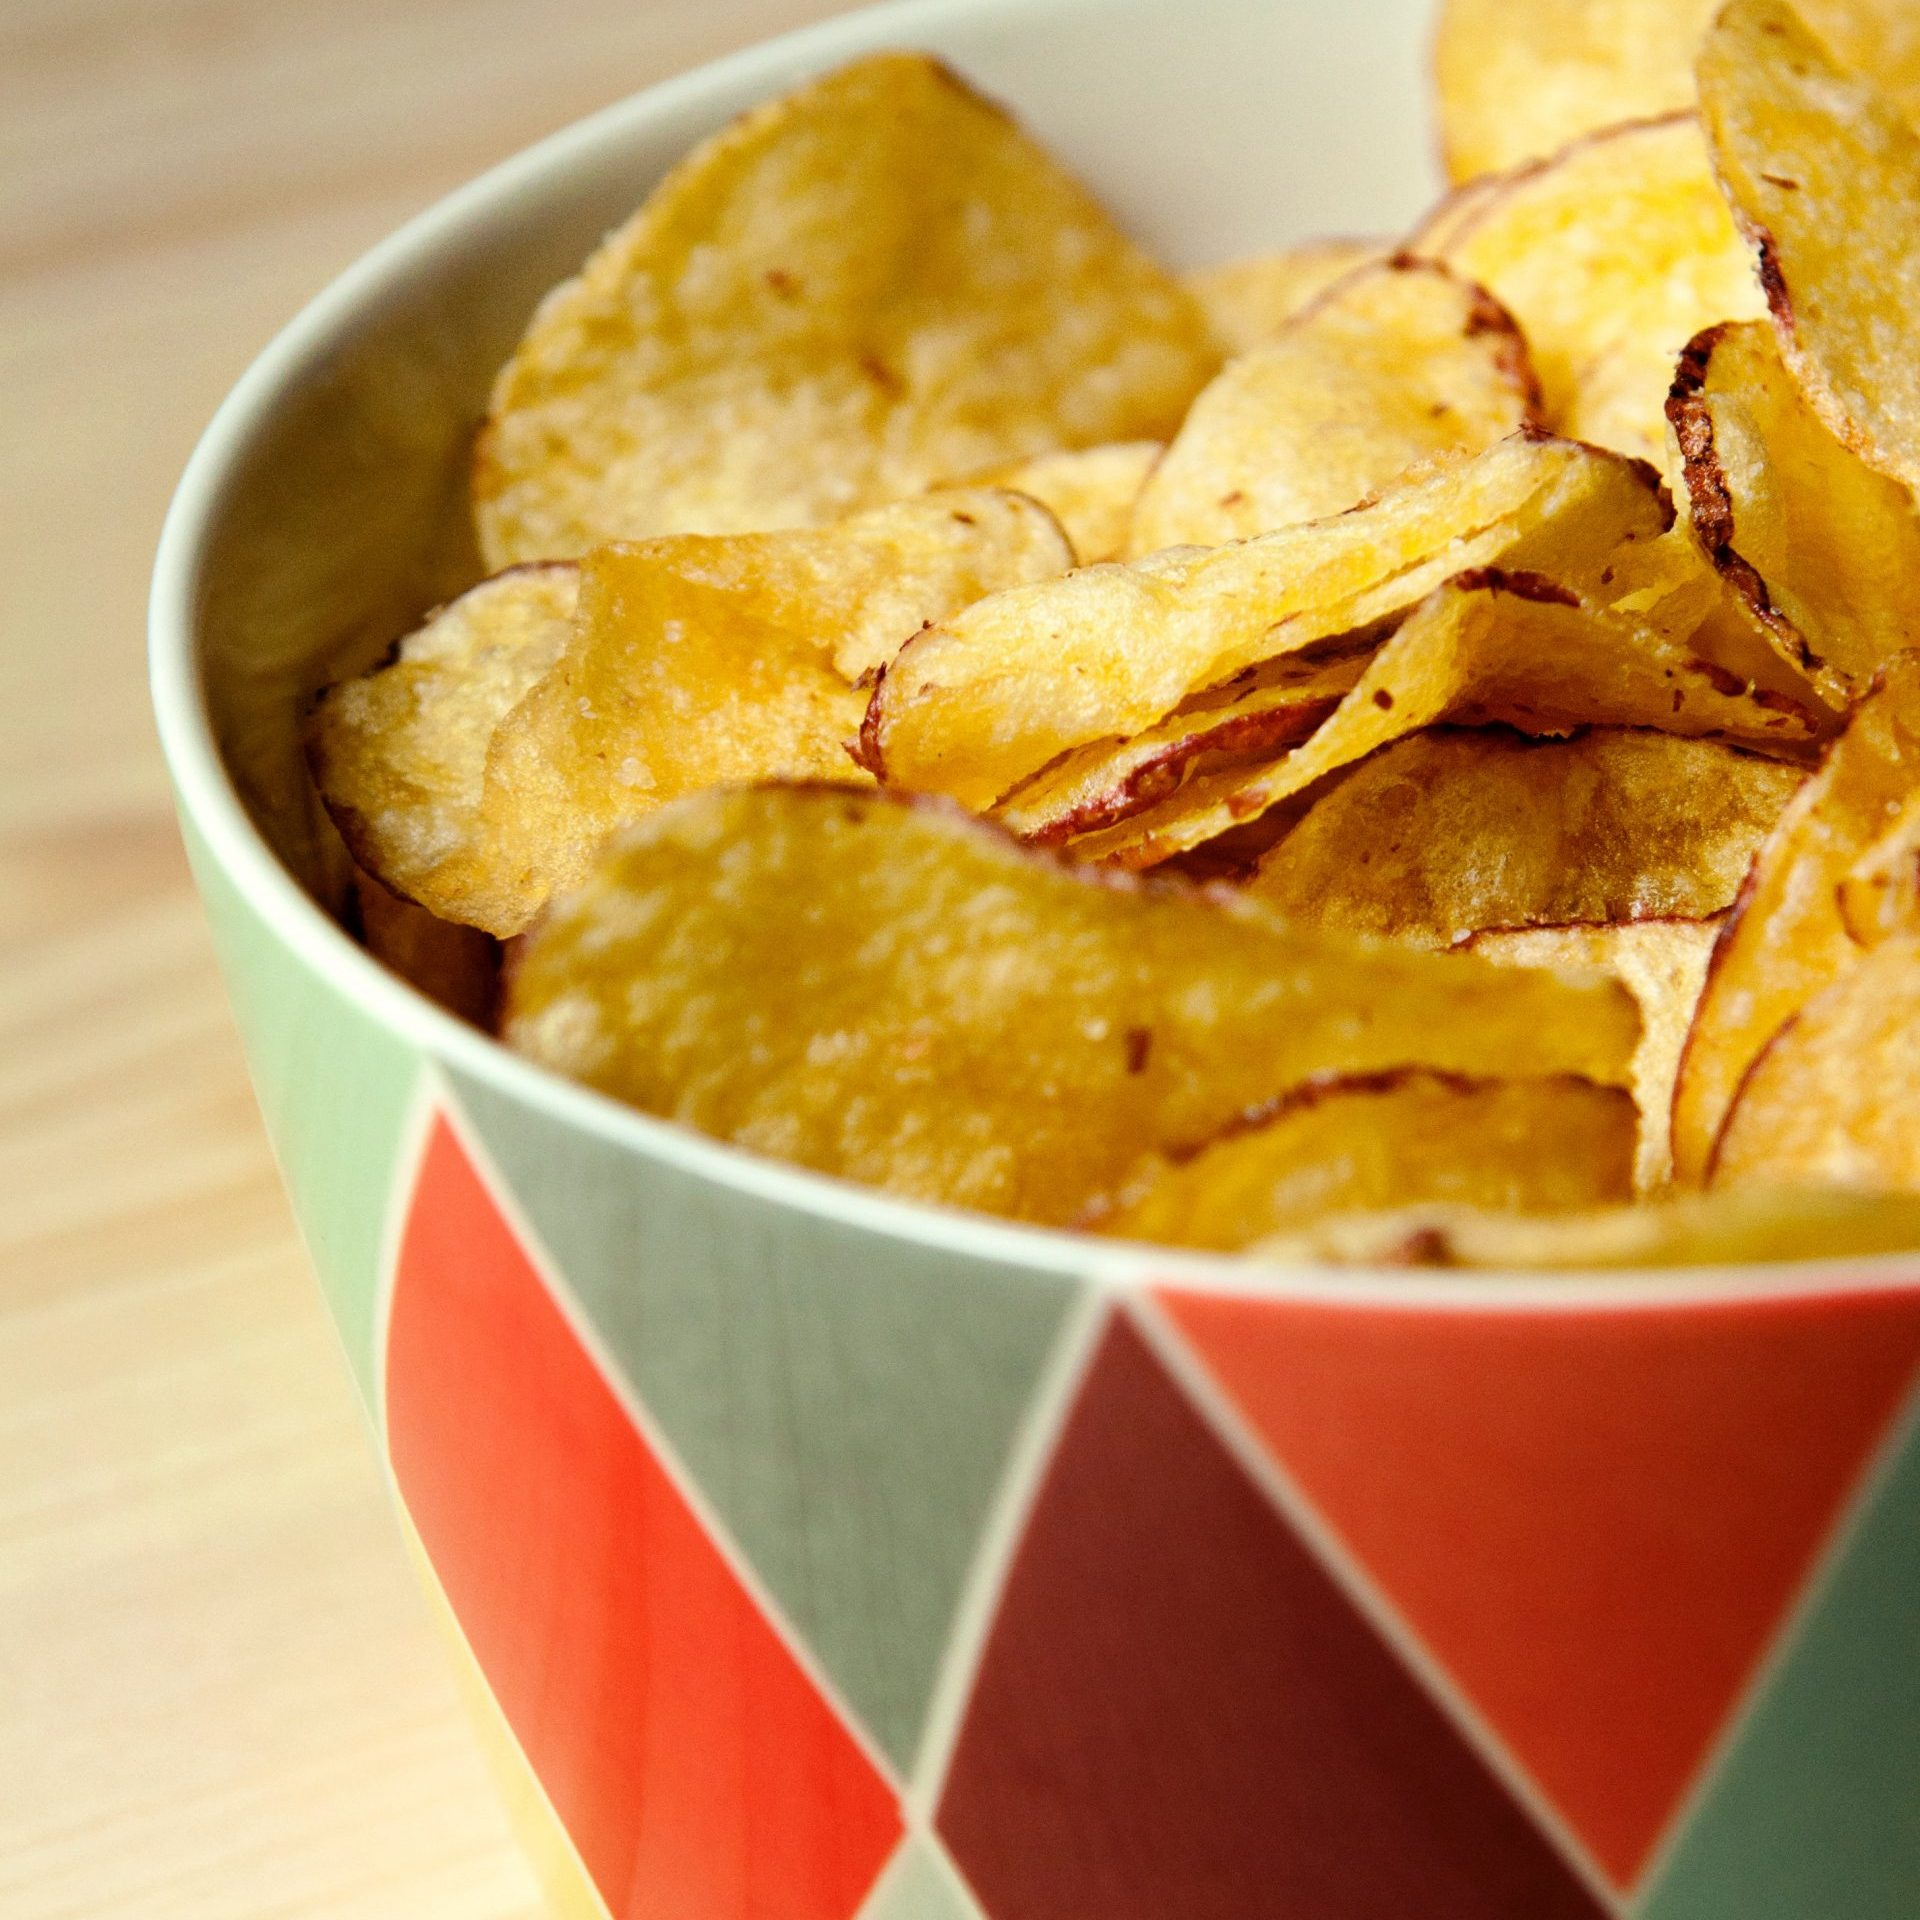 potato crisps chips in a colorful bowl on a wooden table